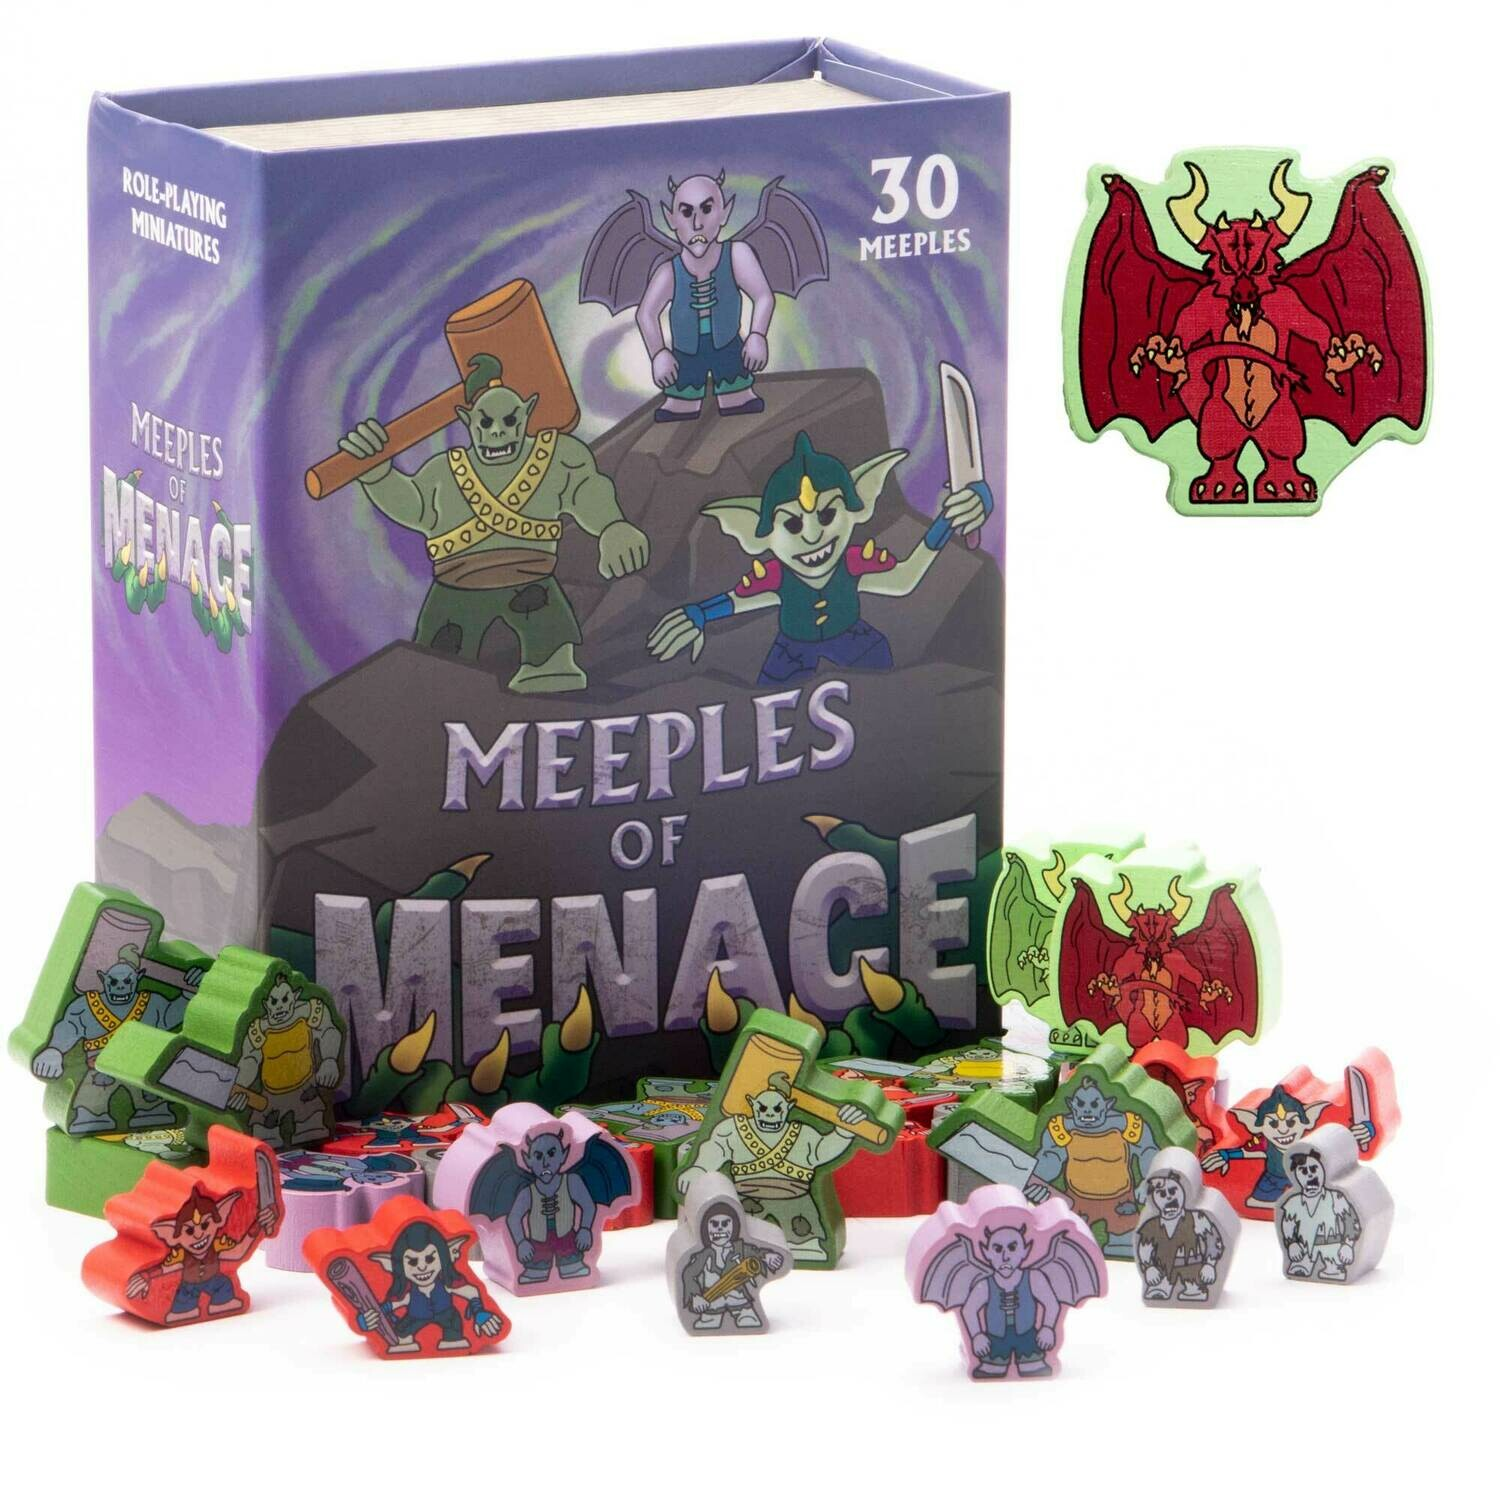 Meeples of Menace RPG Board Card Tabletop Gaming Parts Board Card